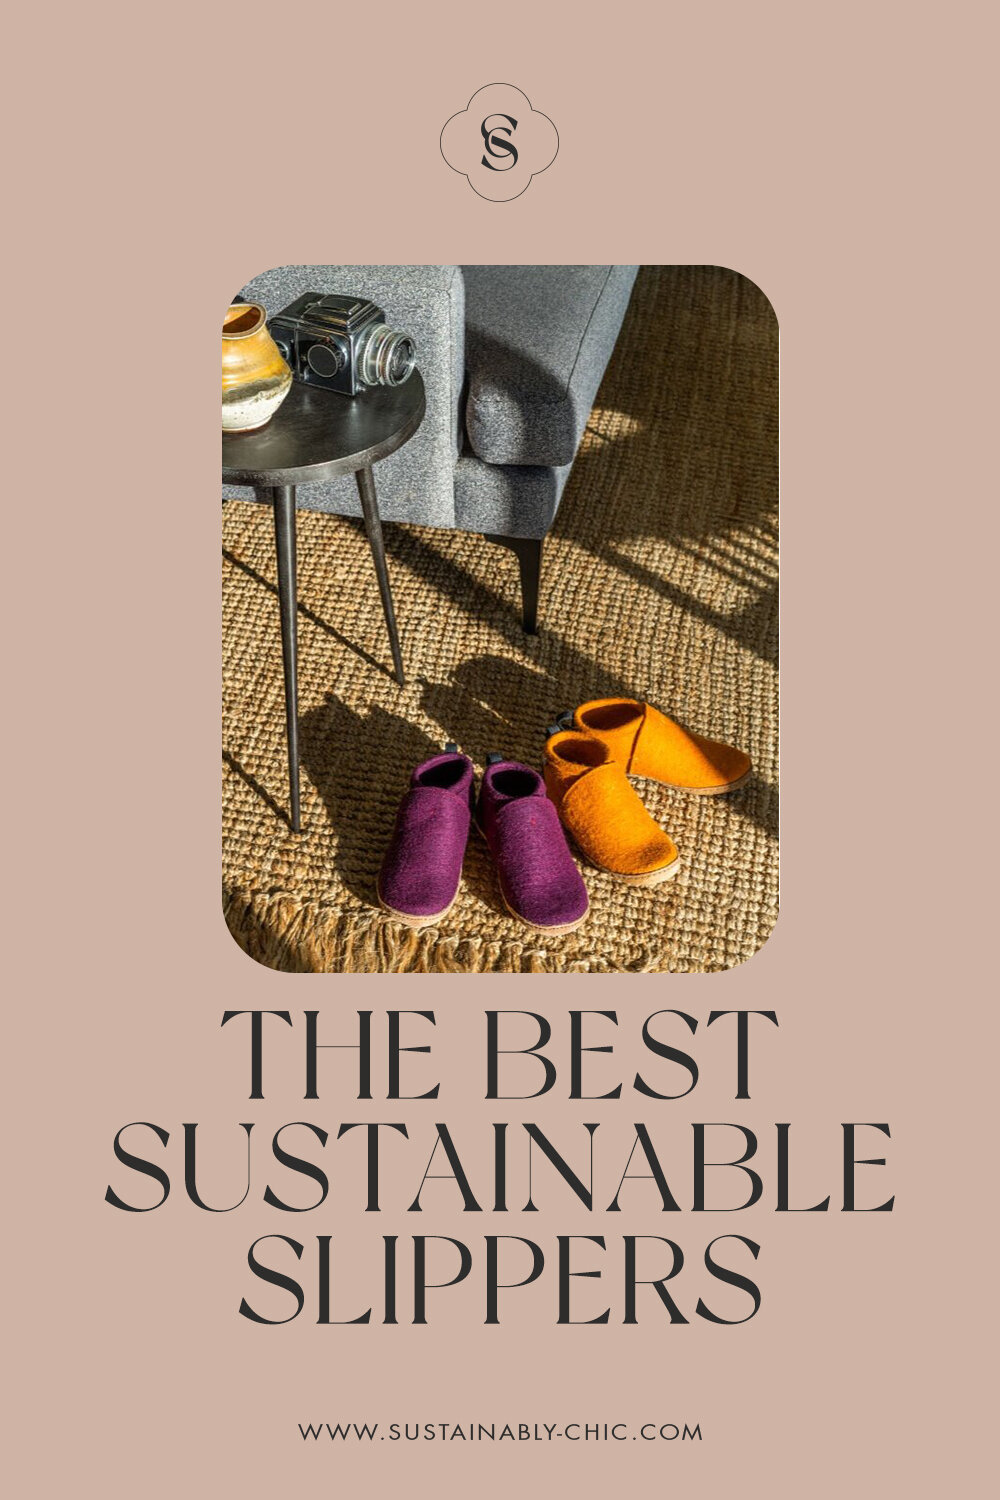 Sustainably Chic | Sustainable Fashion Blog | The Best Sustainable Slippers for Cozy Feet.jpg